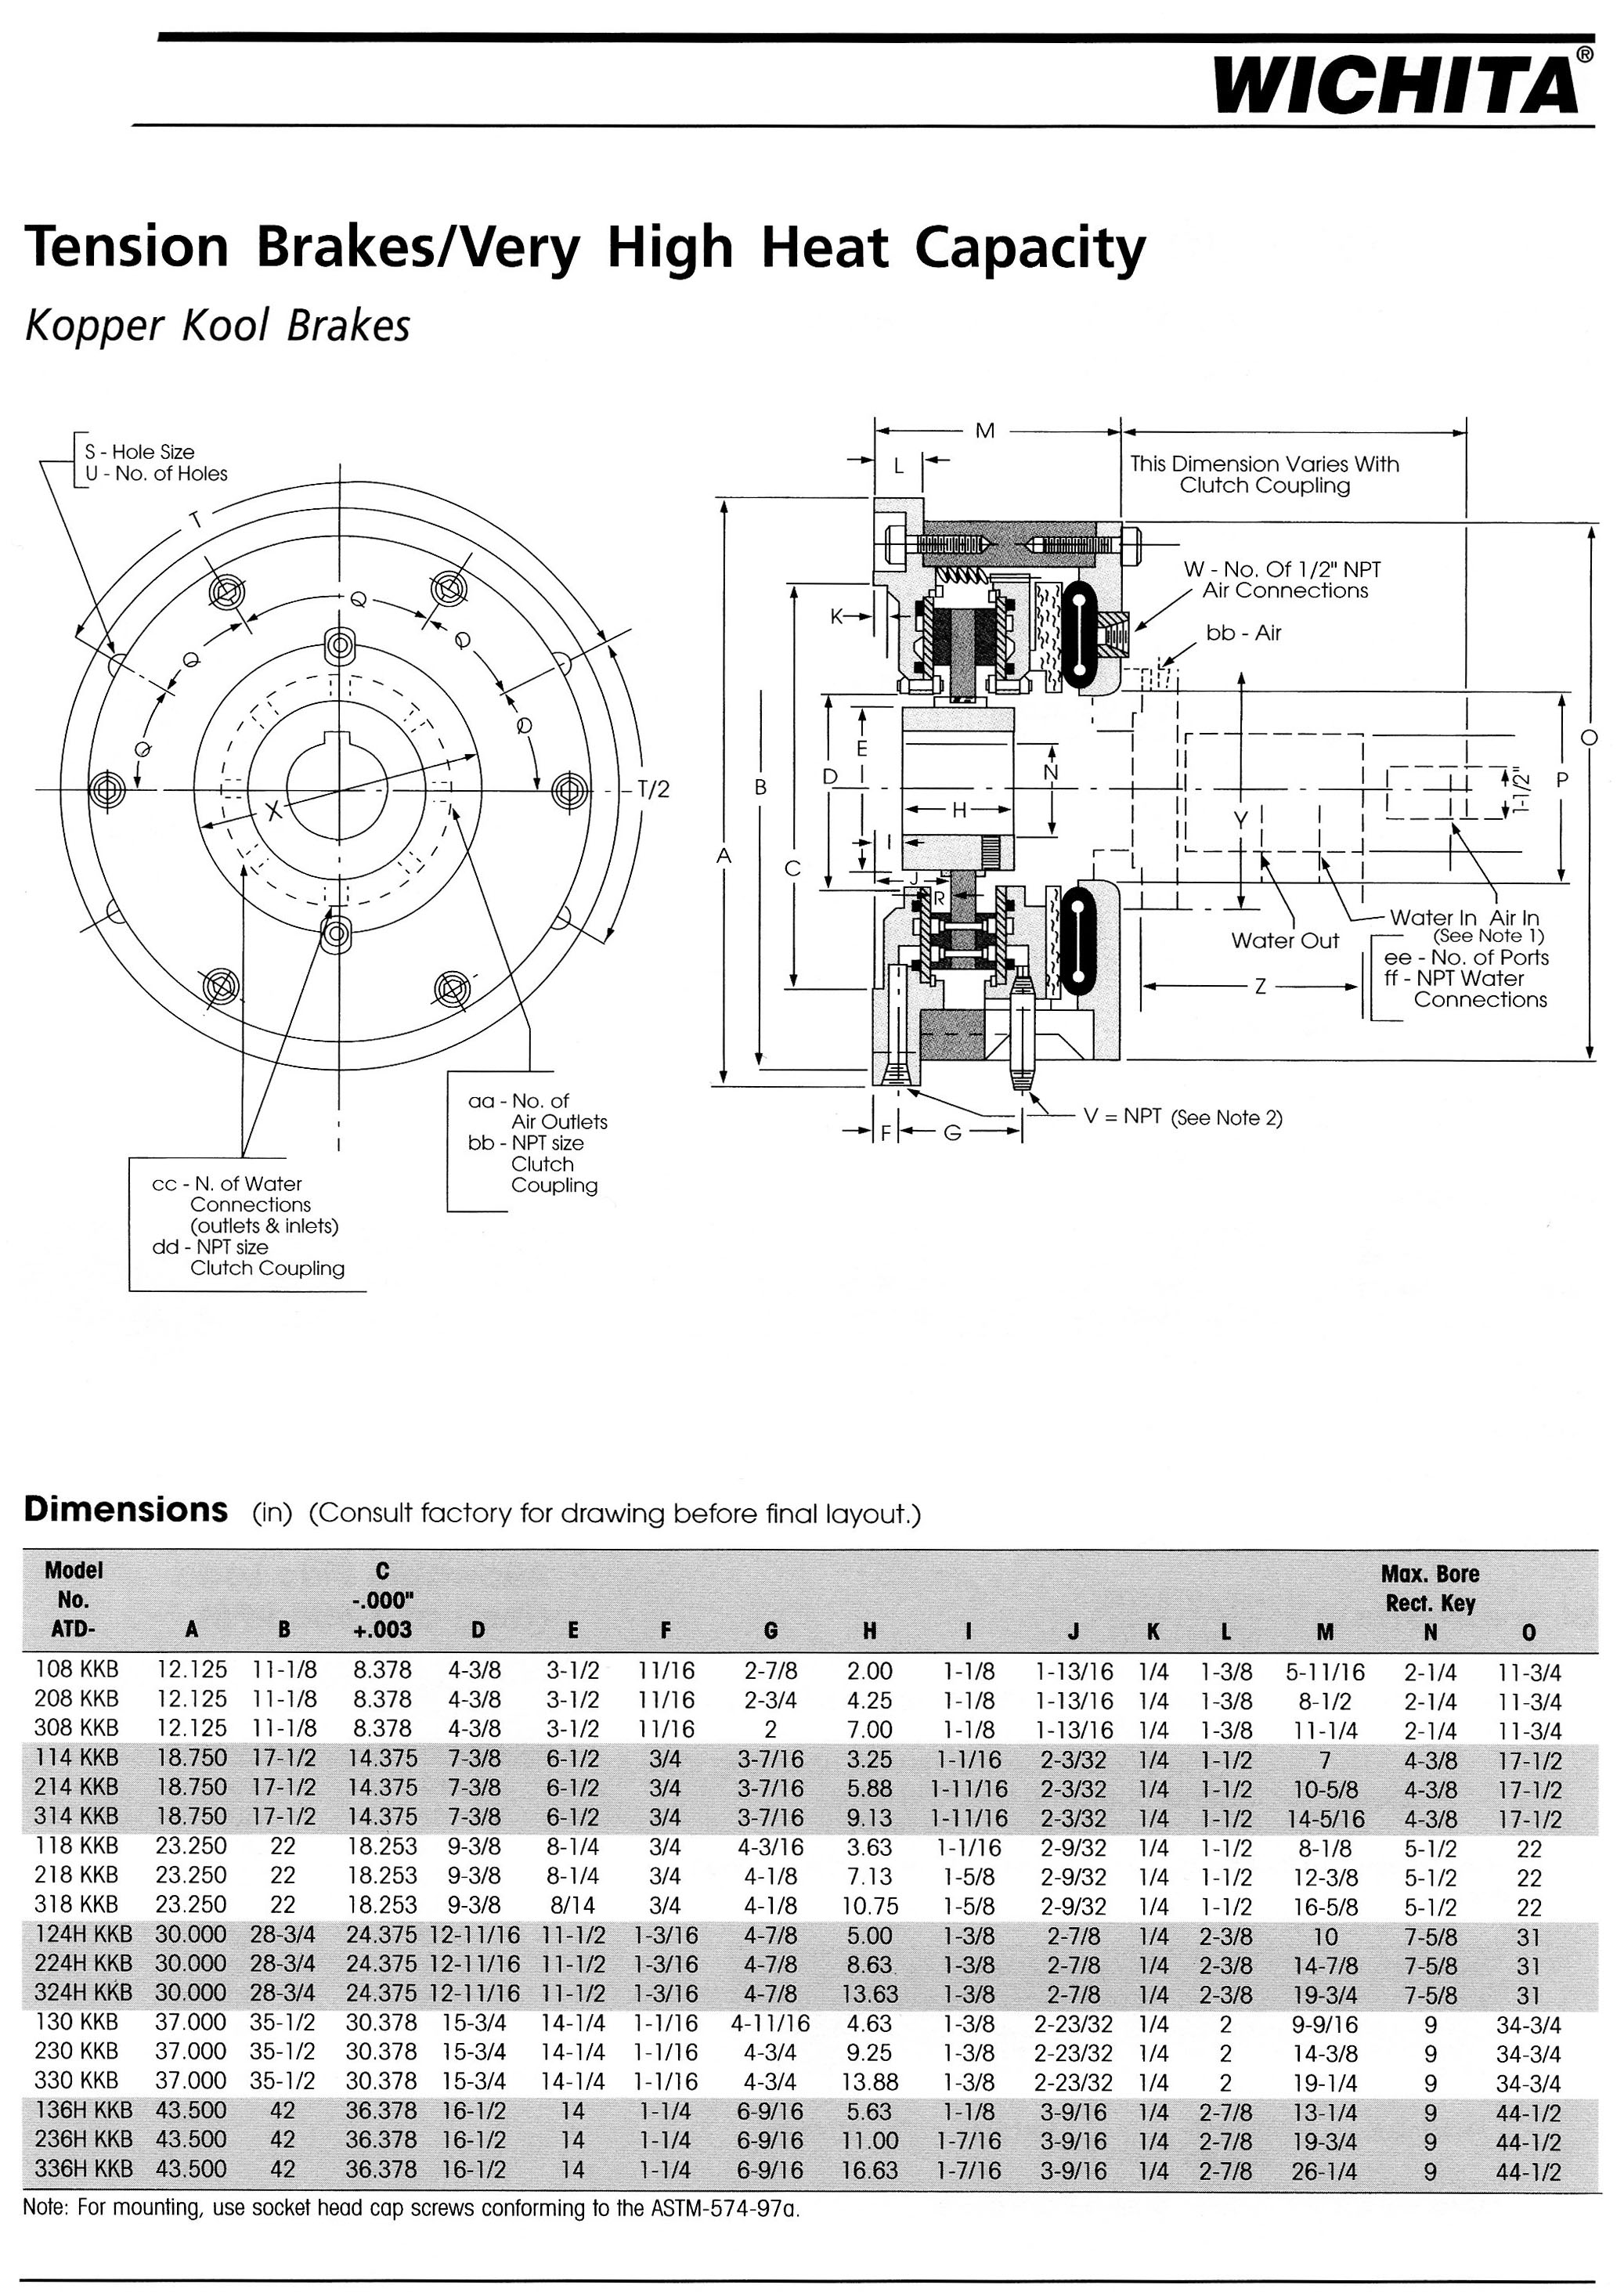 Ottawa Clutch Automotive Industrial Agricultural Clutches 1968 Ford Galaxie Engine Diagram 16 Wichita Kopper Kool And Tension Brakes